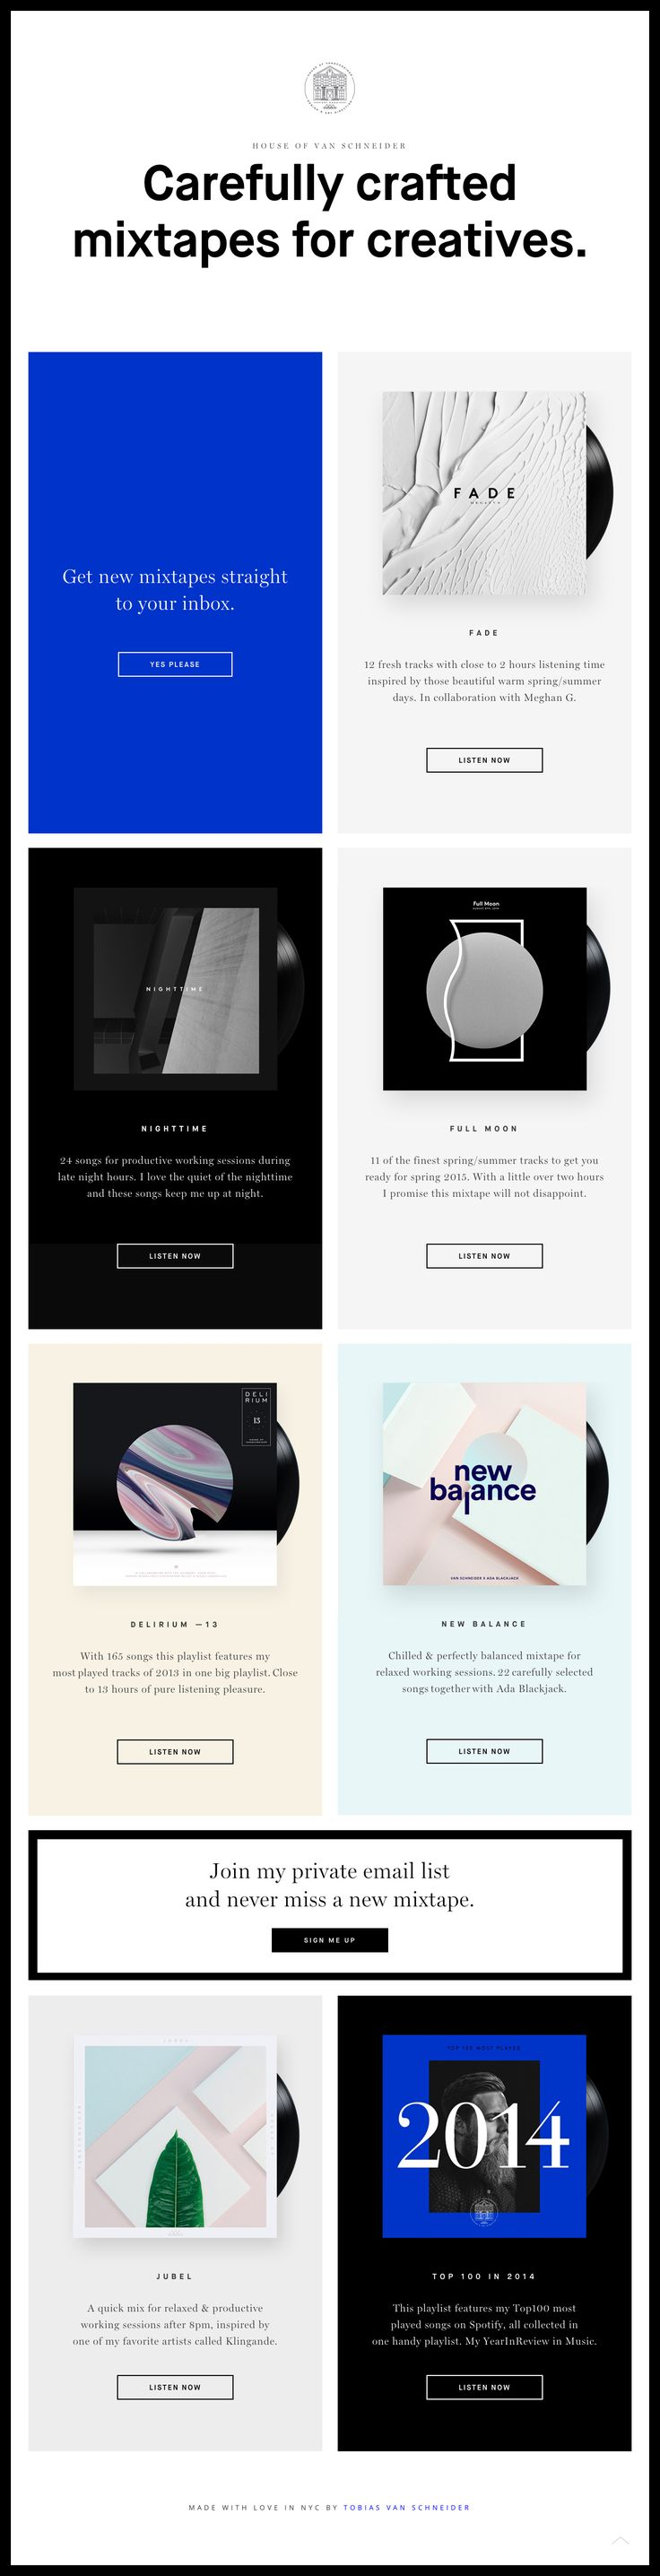 Clean responsive One Pager showcasing a collection of curated mixtapes by Spotify lead designer, Tobias van Schneider.